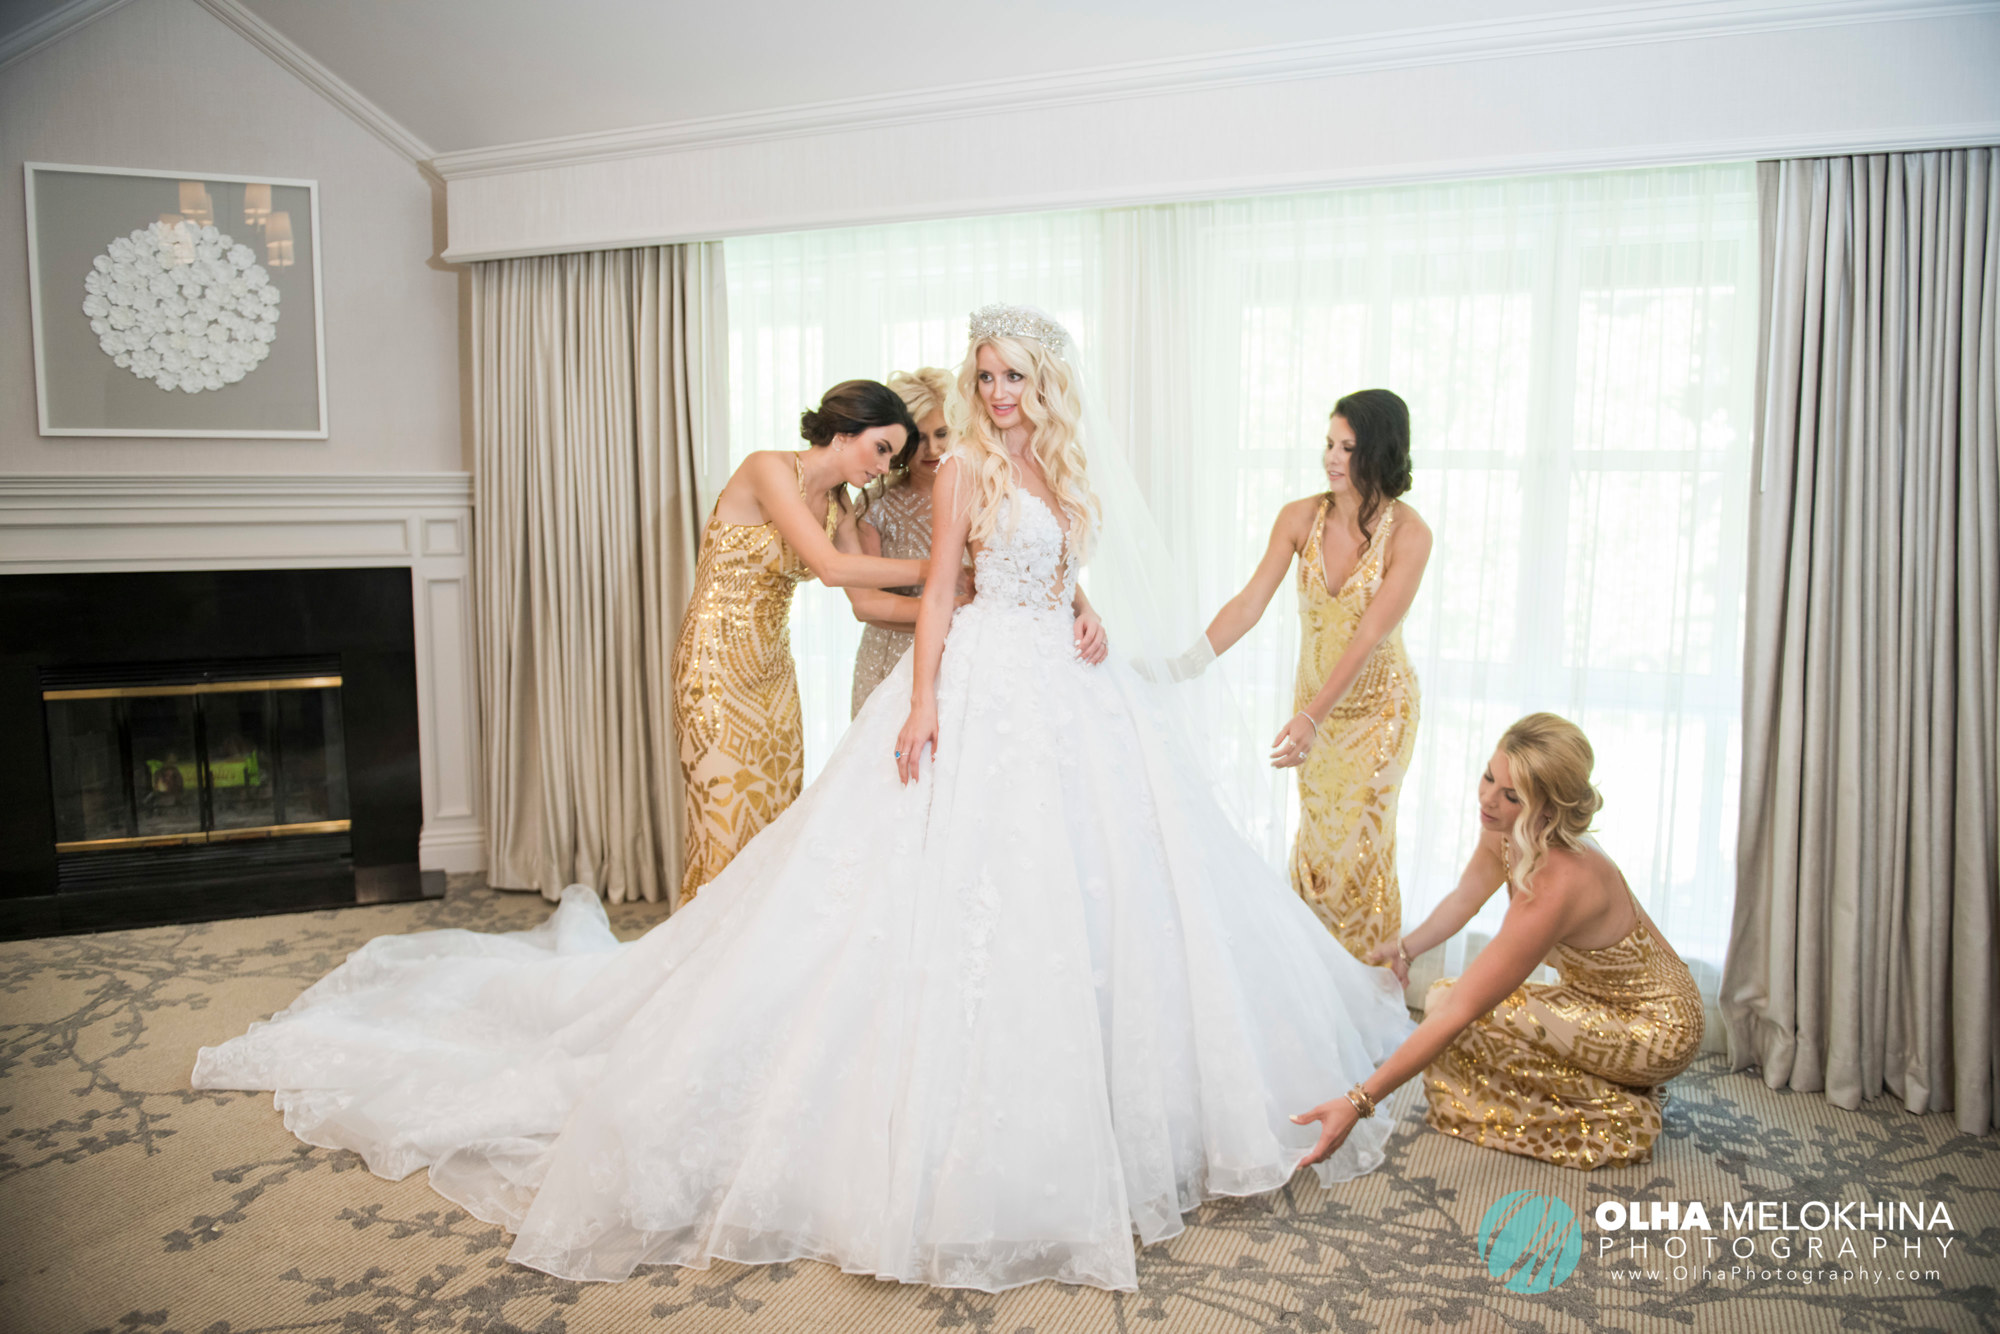 What a jaw-dropping look. Bride, mother of the bride & her bridesmaids.